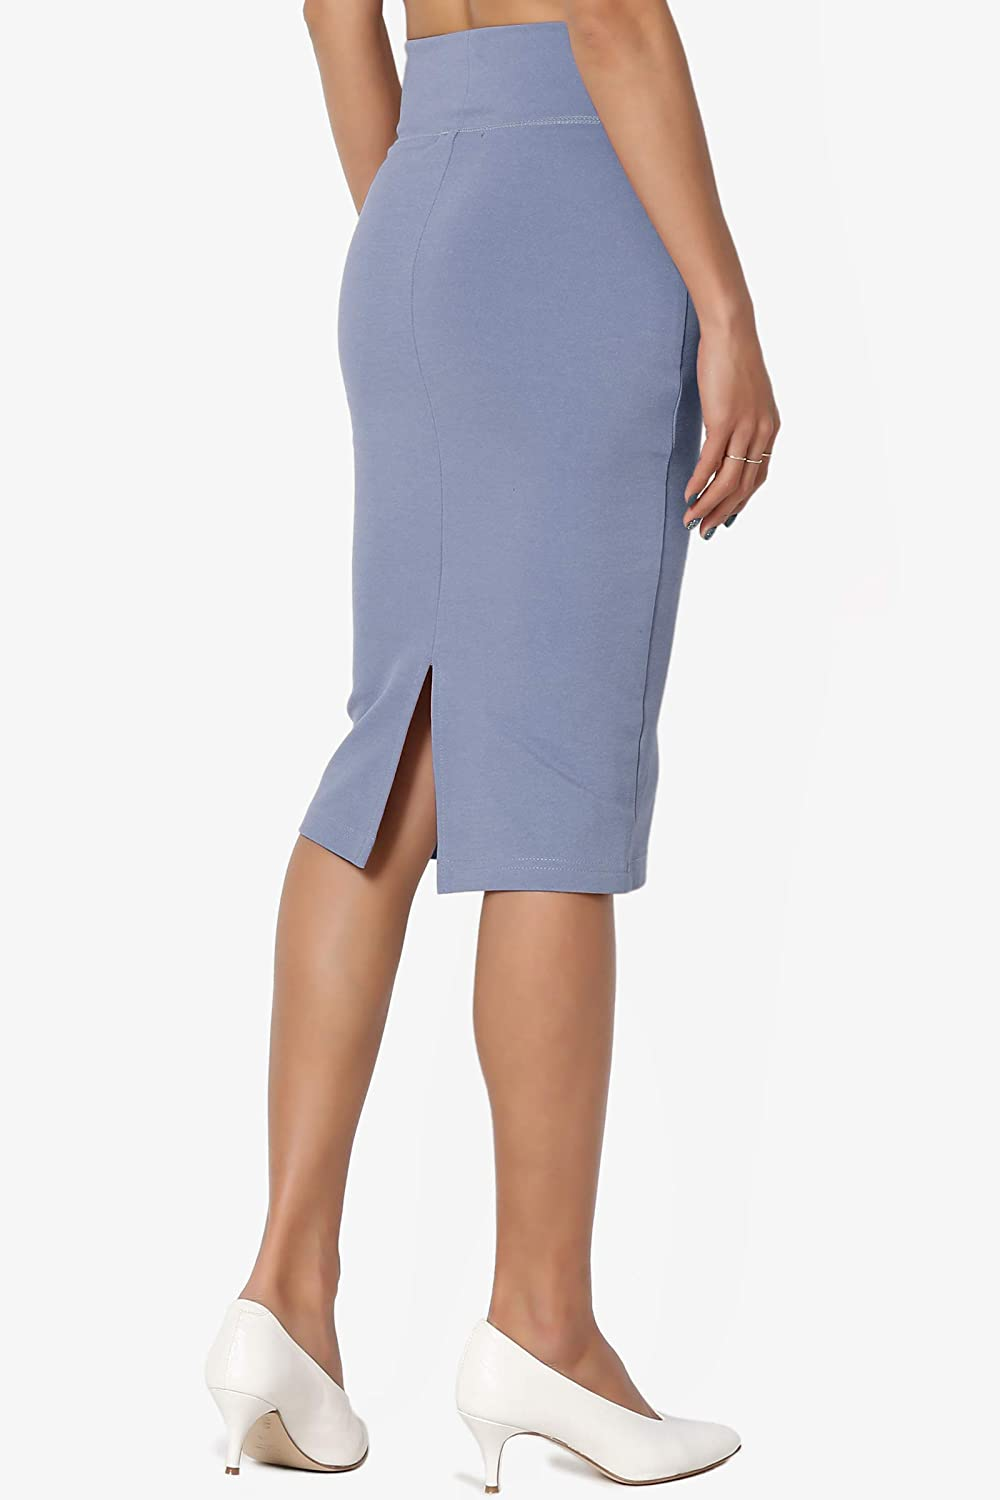 823602960e578 TheMogan 4 Way Stretch Curvy Ponte High Waist Knee Length Midi Pencil Skirt  at Amazon Women s Clothing store